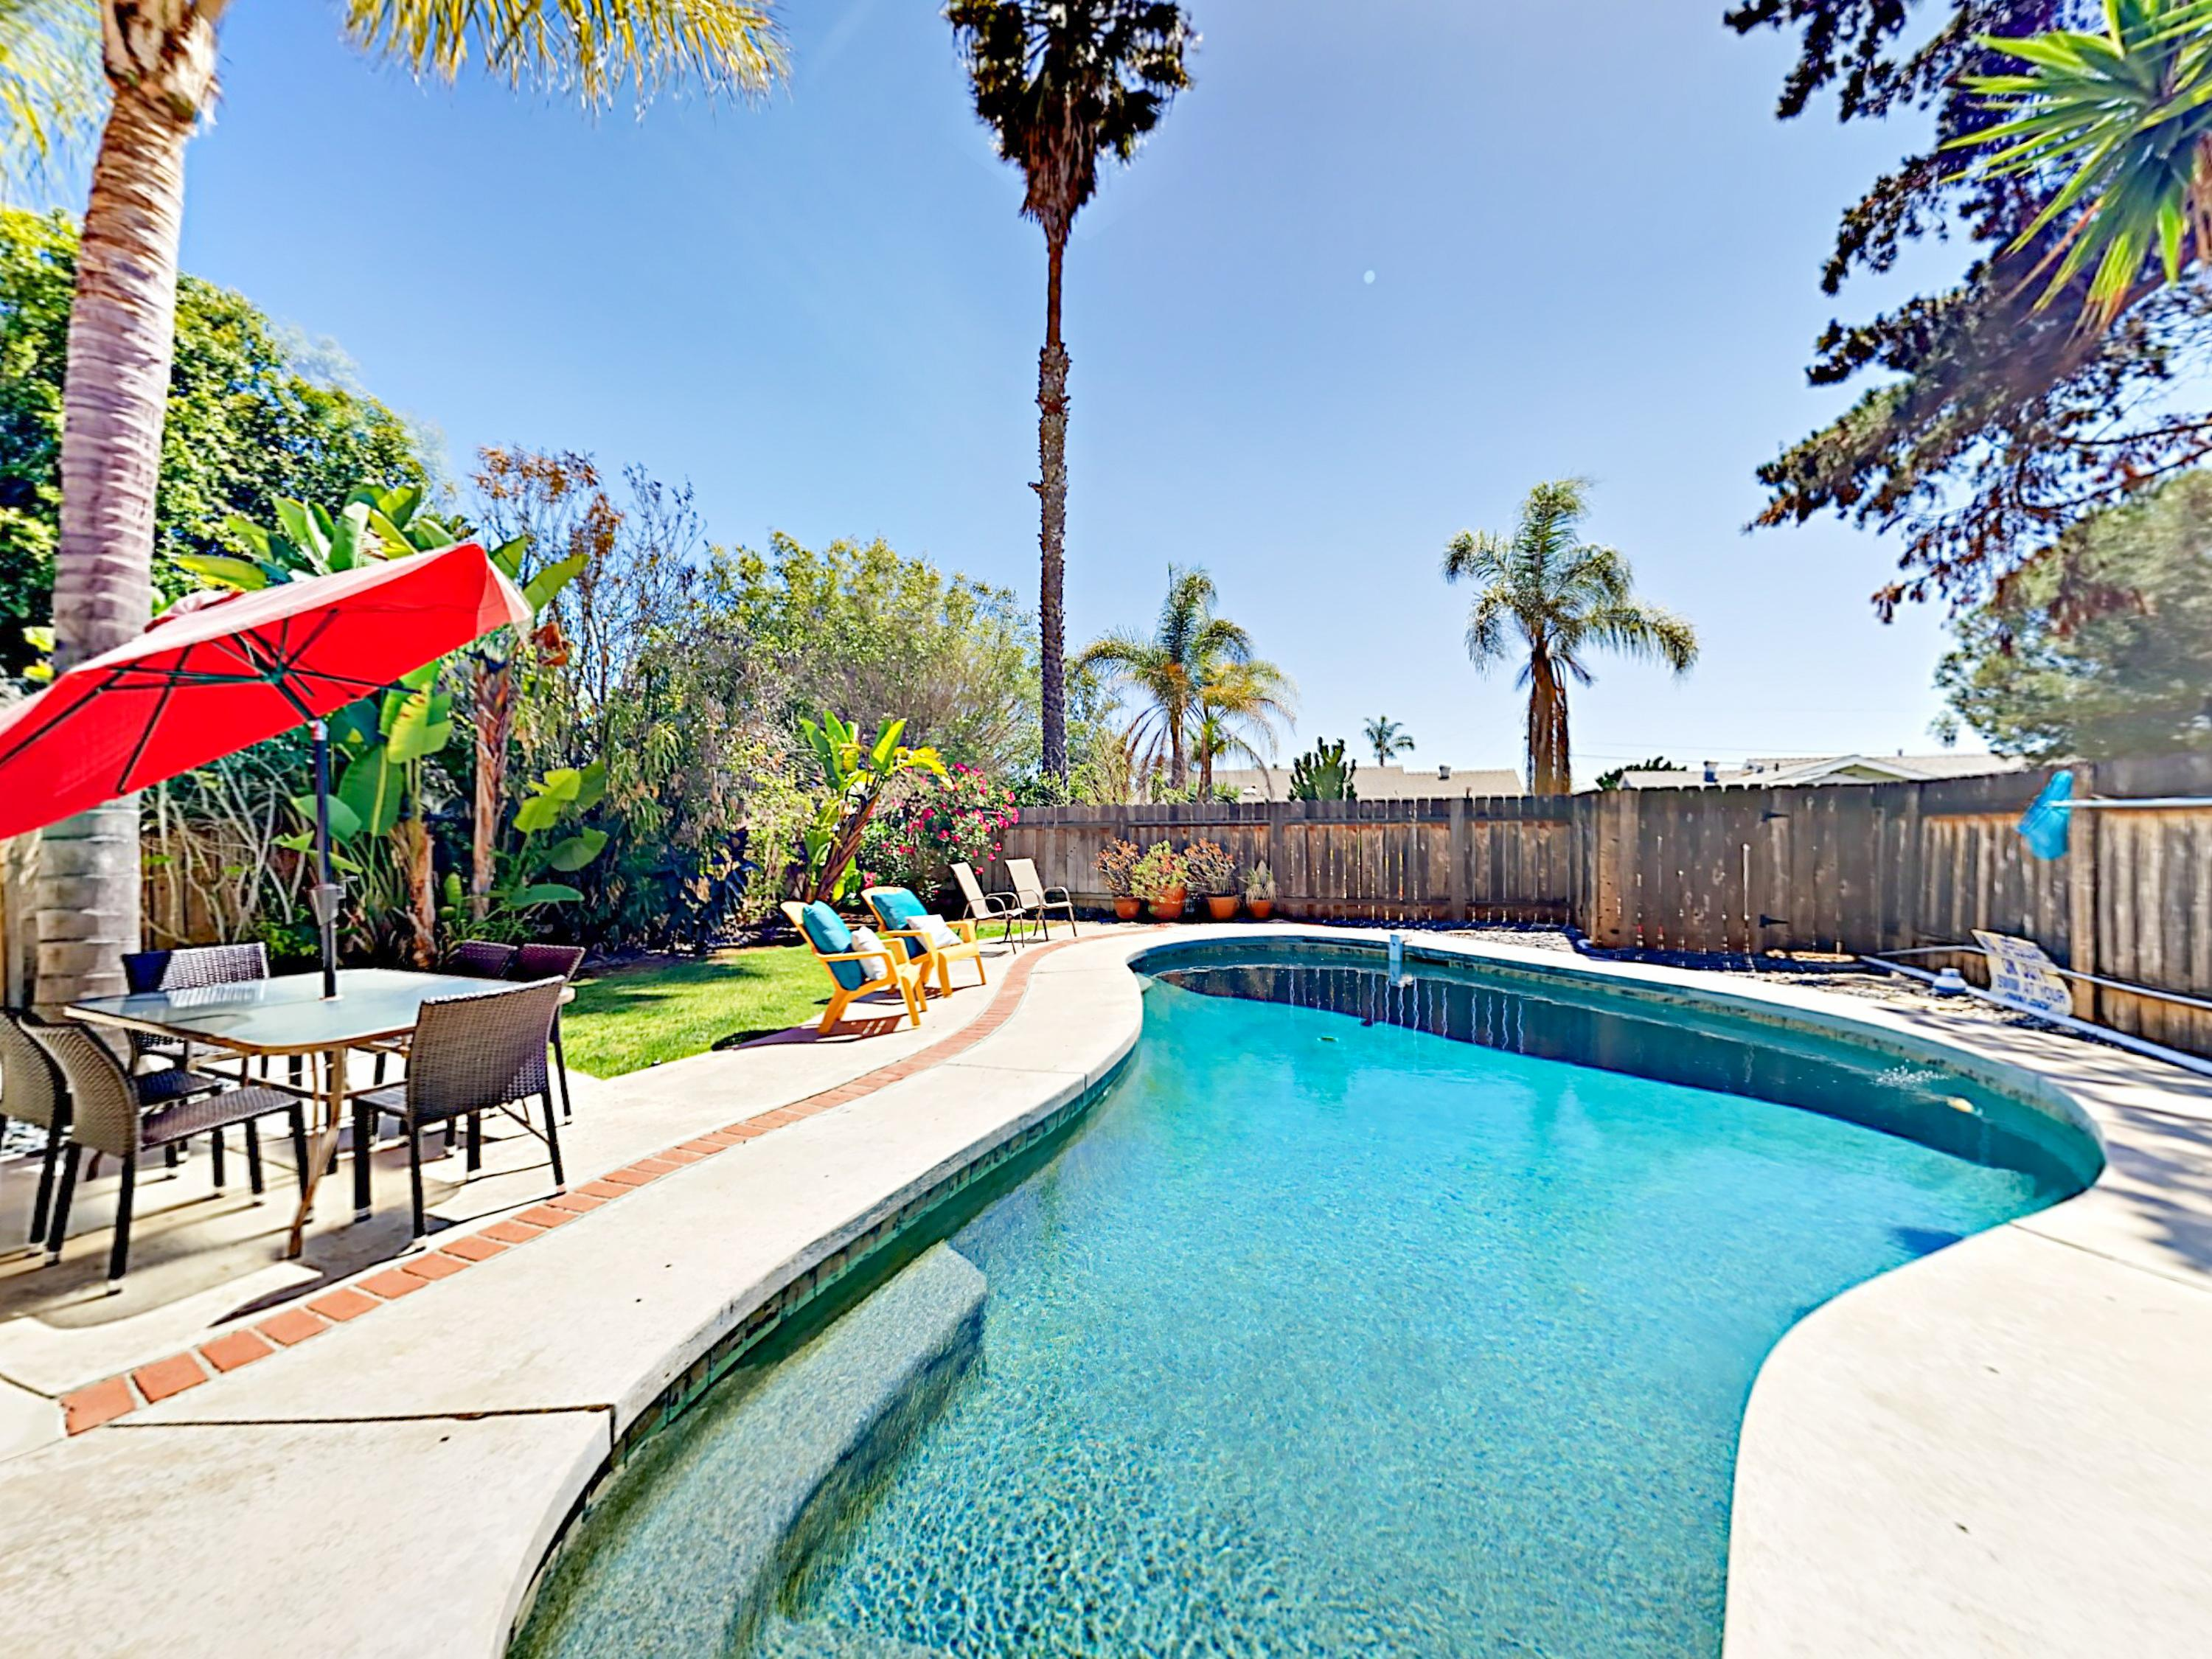 Relax around the backyard pool at this inviting San Diego home, professionally managed by TurnKey Vacation Rentals.